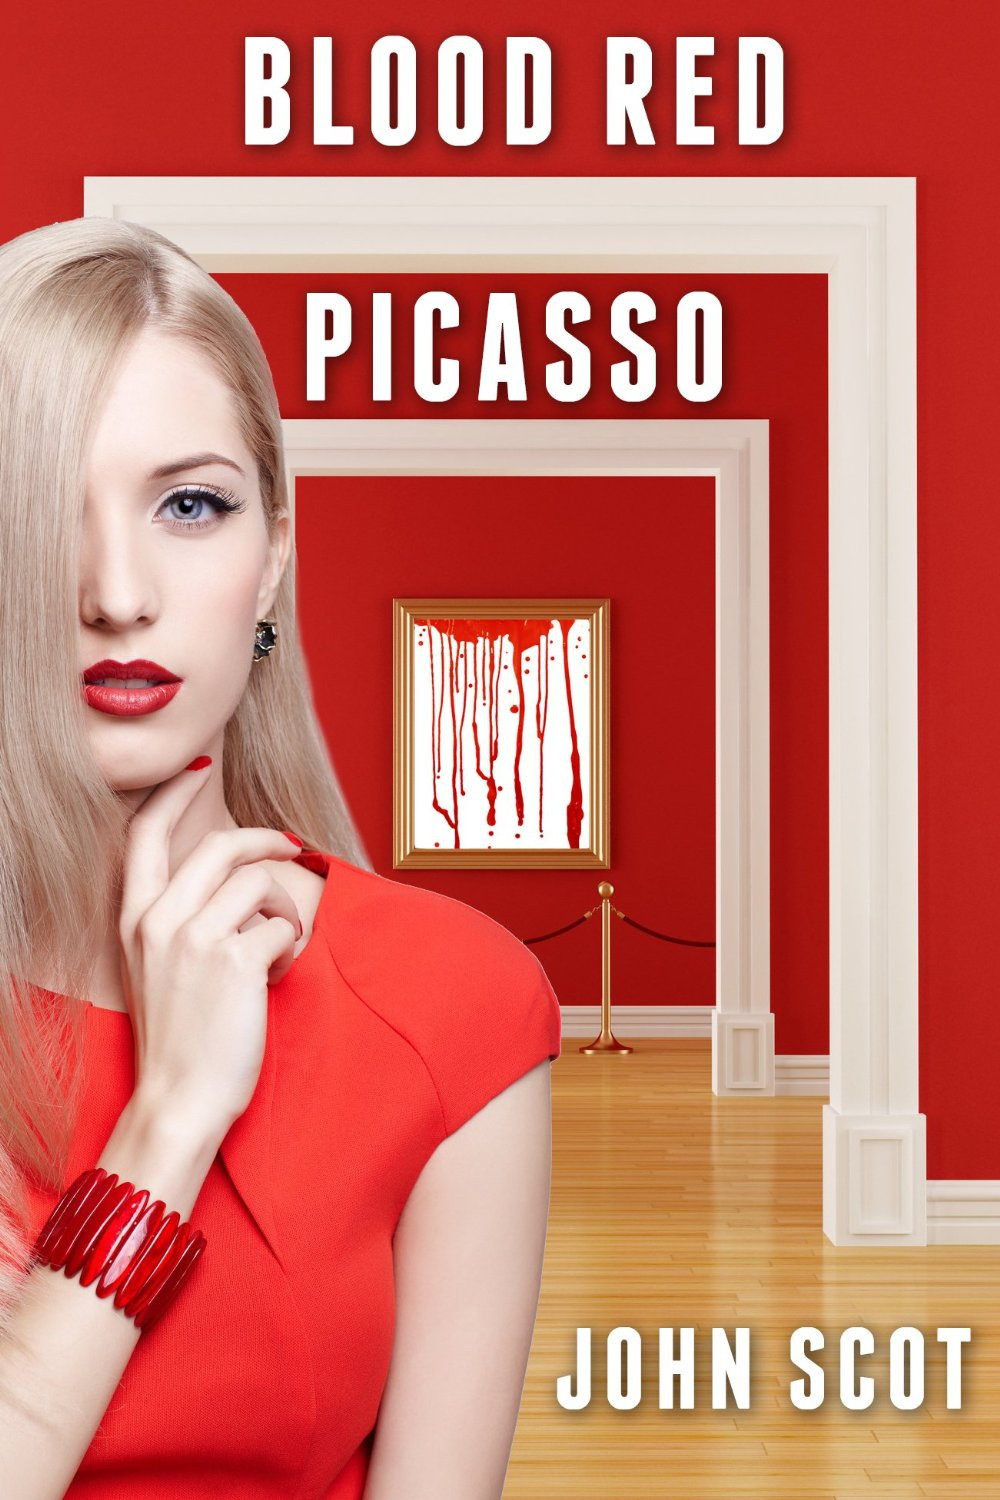 Blood Red Picasso